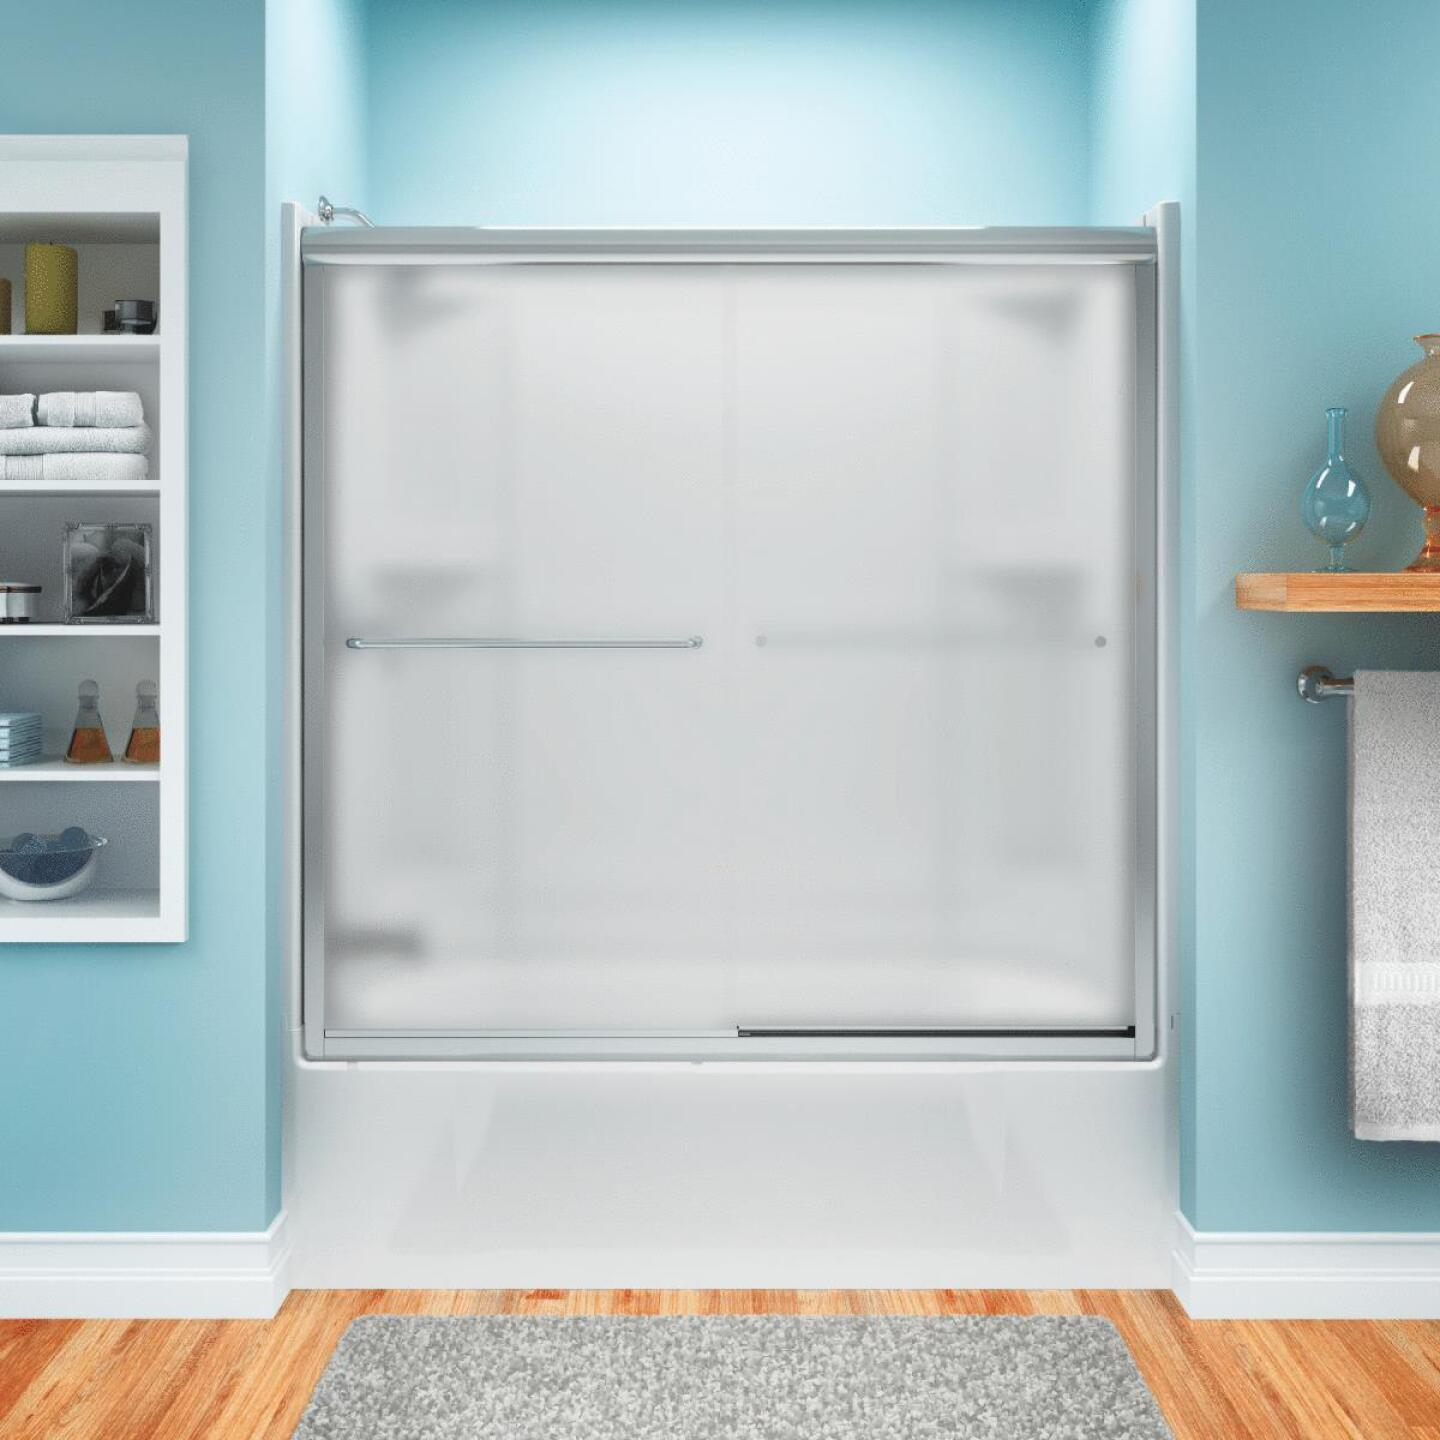 Sterling Finesse 59-5/8 In. W. X 55-3/4 In. H. Chrome Semi-Frameless Frosted Glass Sliding Tub Door Image 1